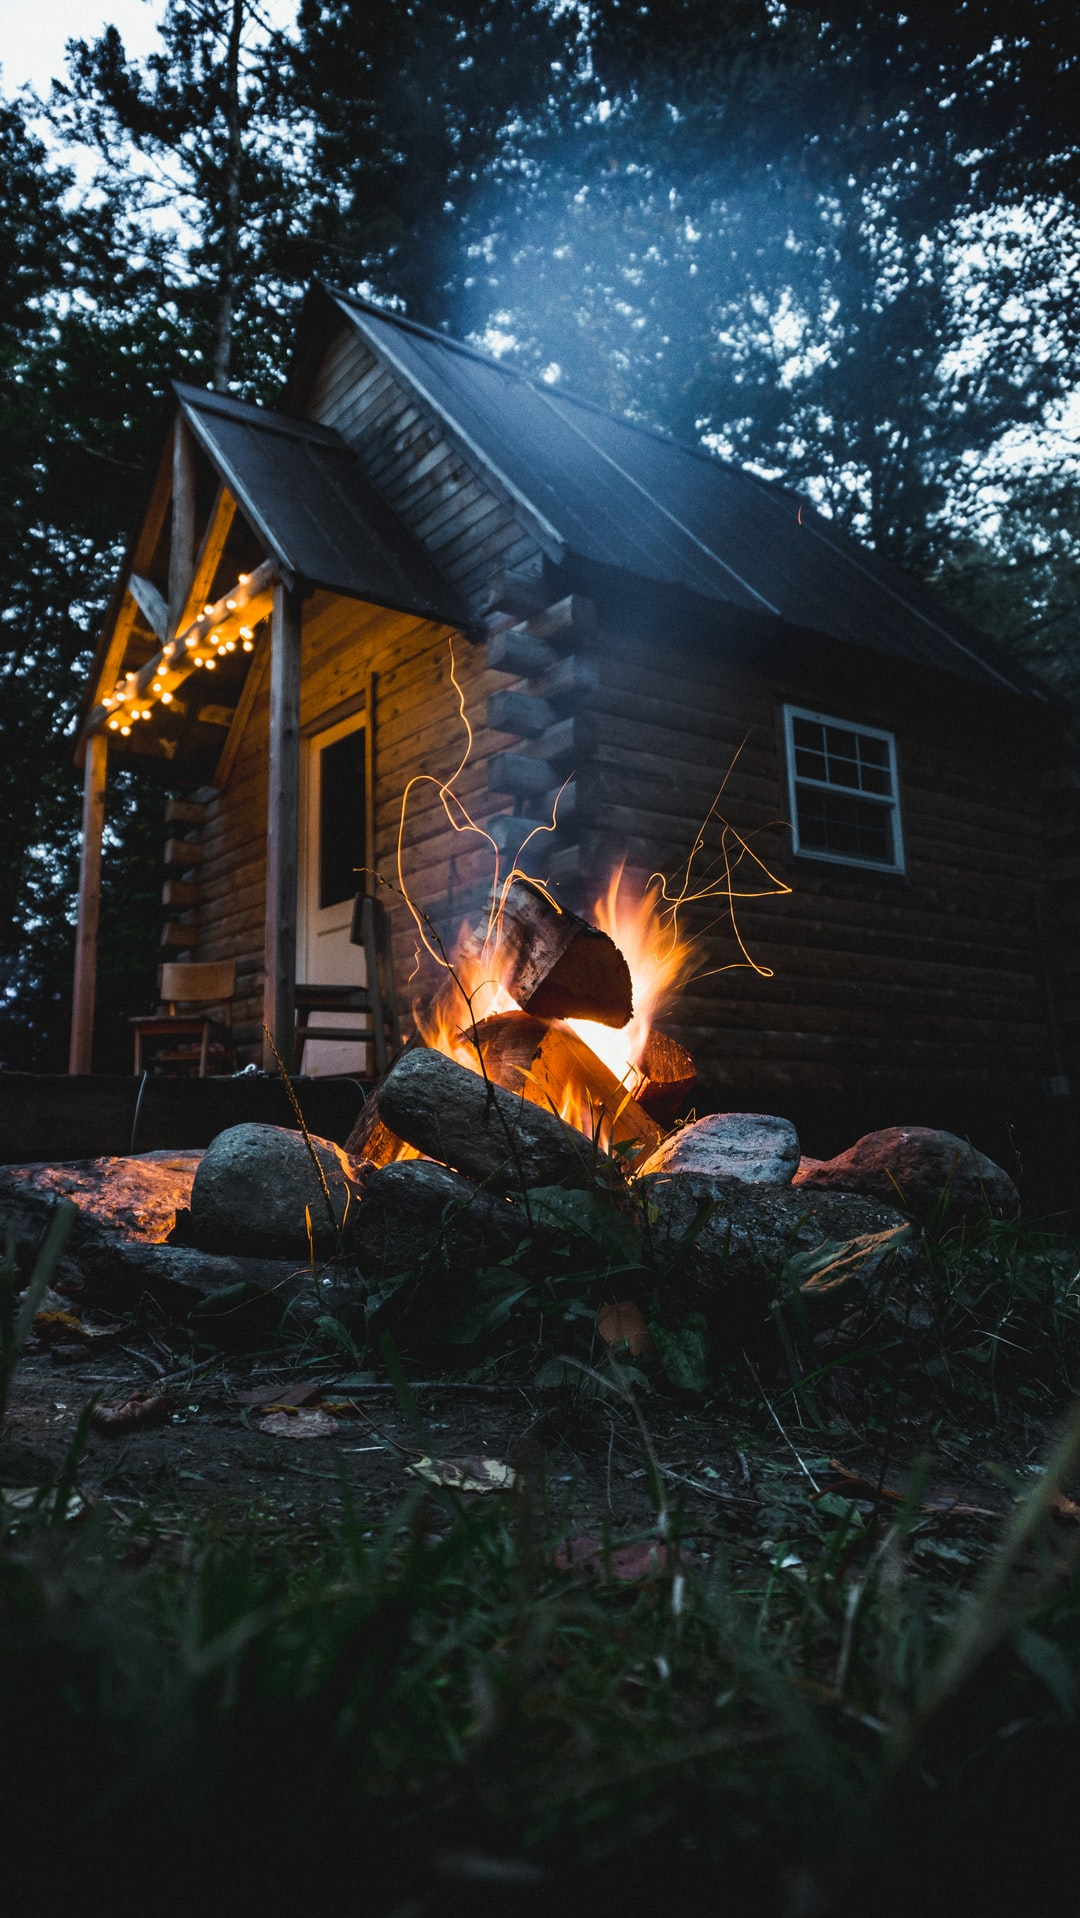 27 Cabin Pictures Download Free Images On Unsplash